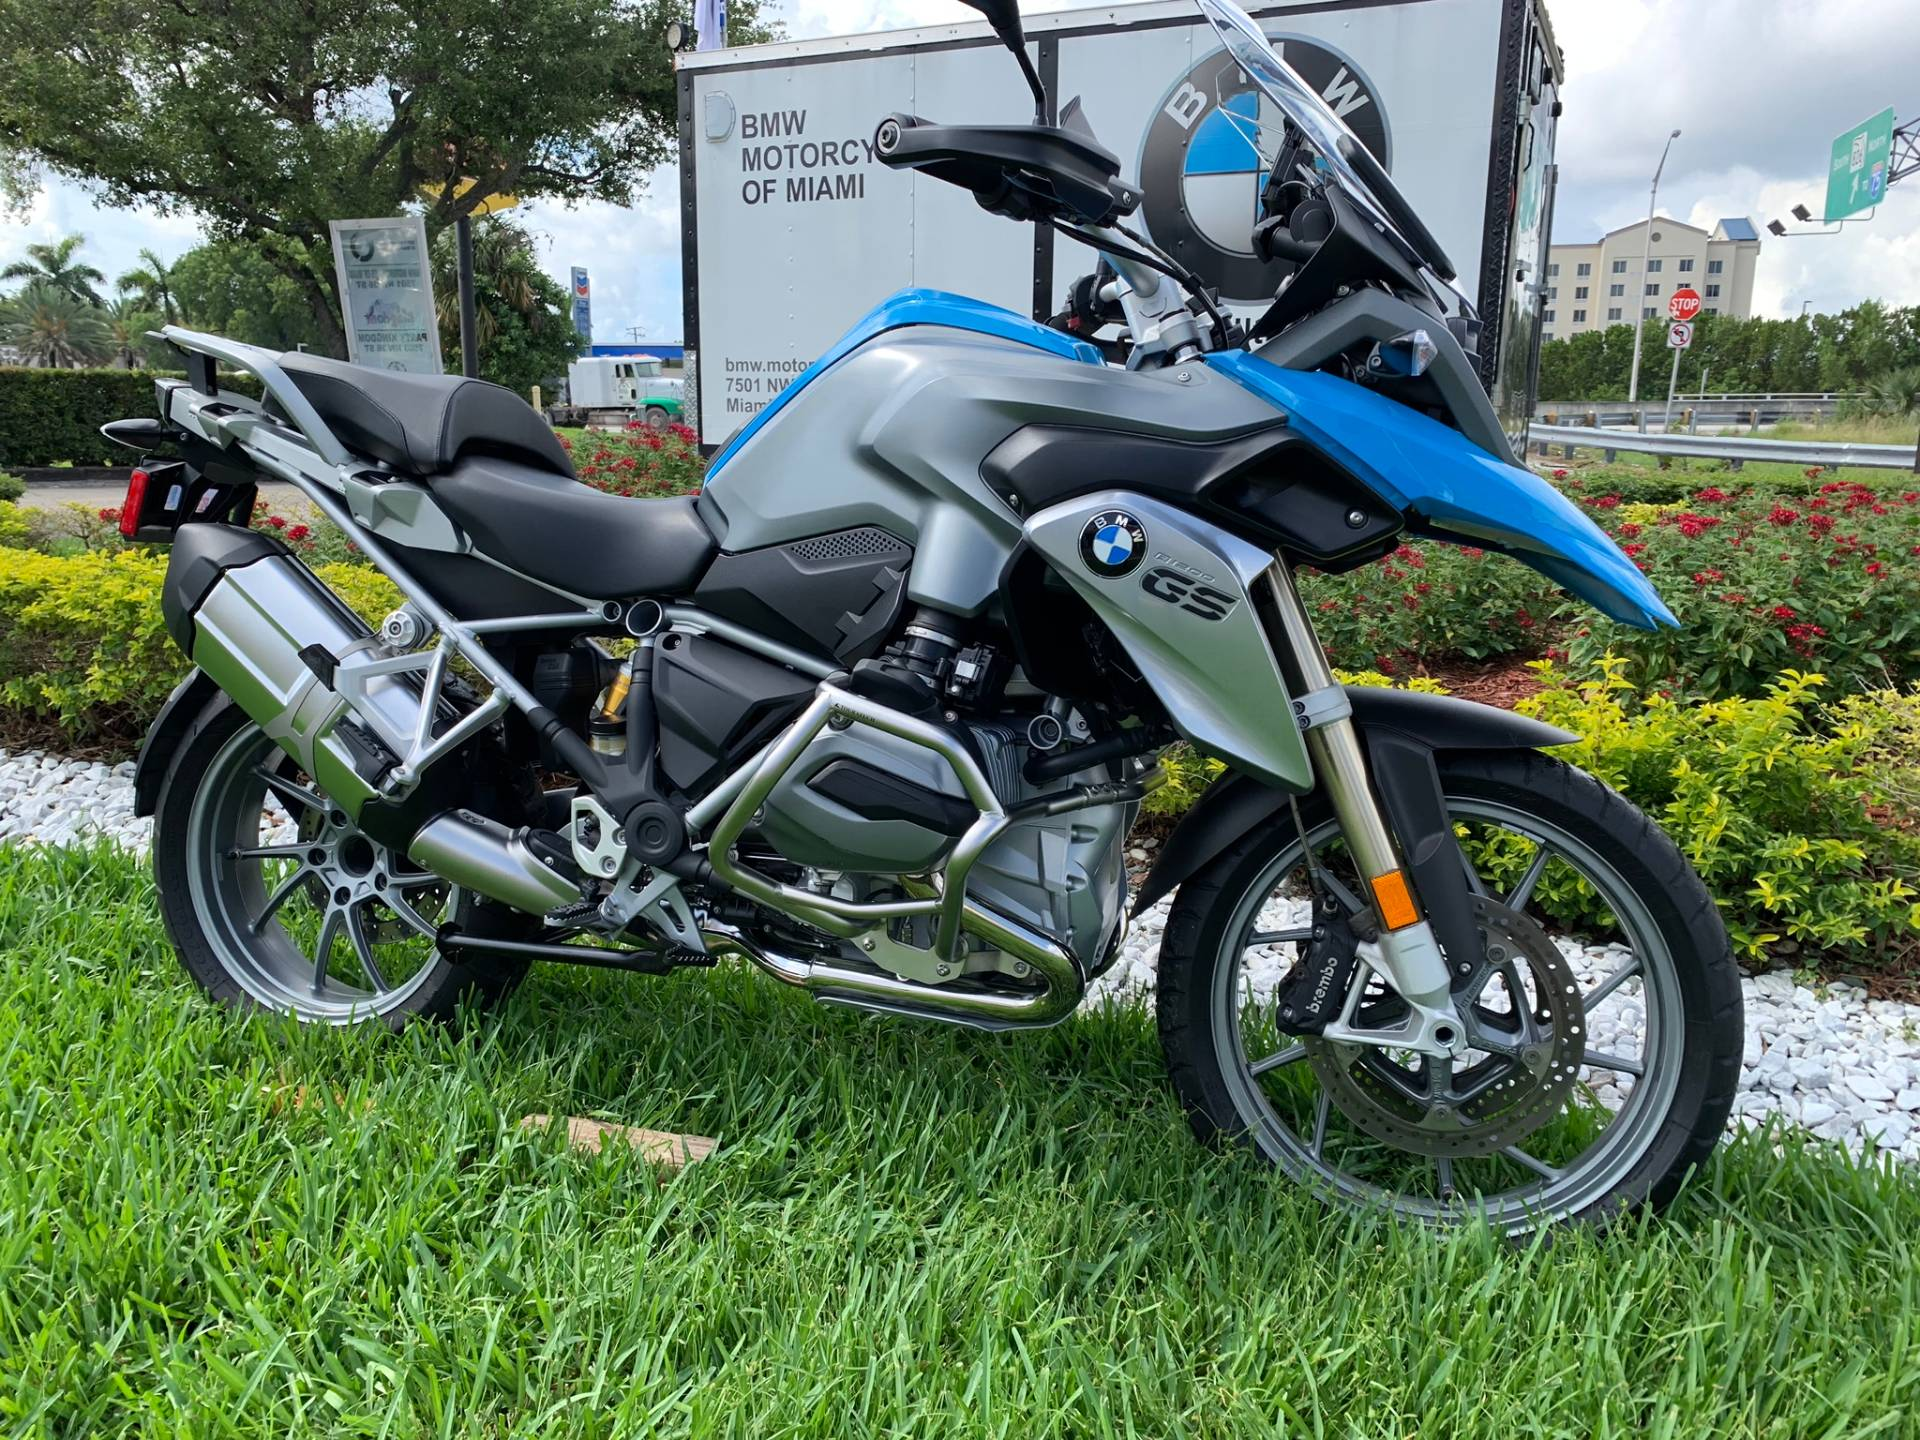 Used 2014 BMW R 1200 GS for sale, Pre-owned BMW R1200GS for sale, BMW Motorcycle Adventure, used BMW GS Fire Blue, BMW Motorcycles of Miami, Motorcycles of Miami, Motorcycles Miami, New Motorcycles, Used Motorcycles, pre-owned. #BMWMotorcyclesOfMiami #MotorcyclesOfMiami - Photo 26